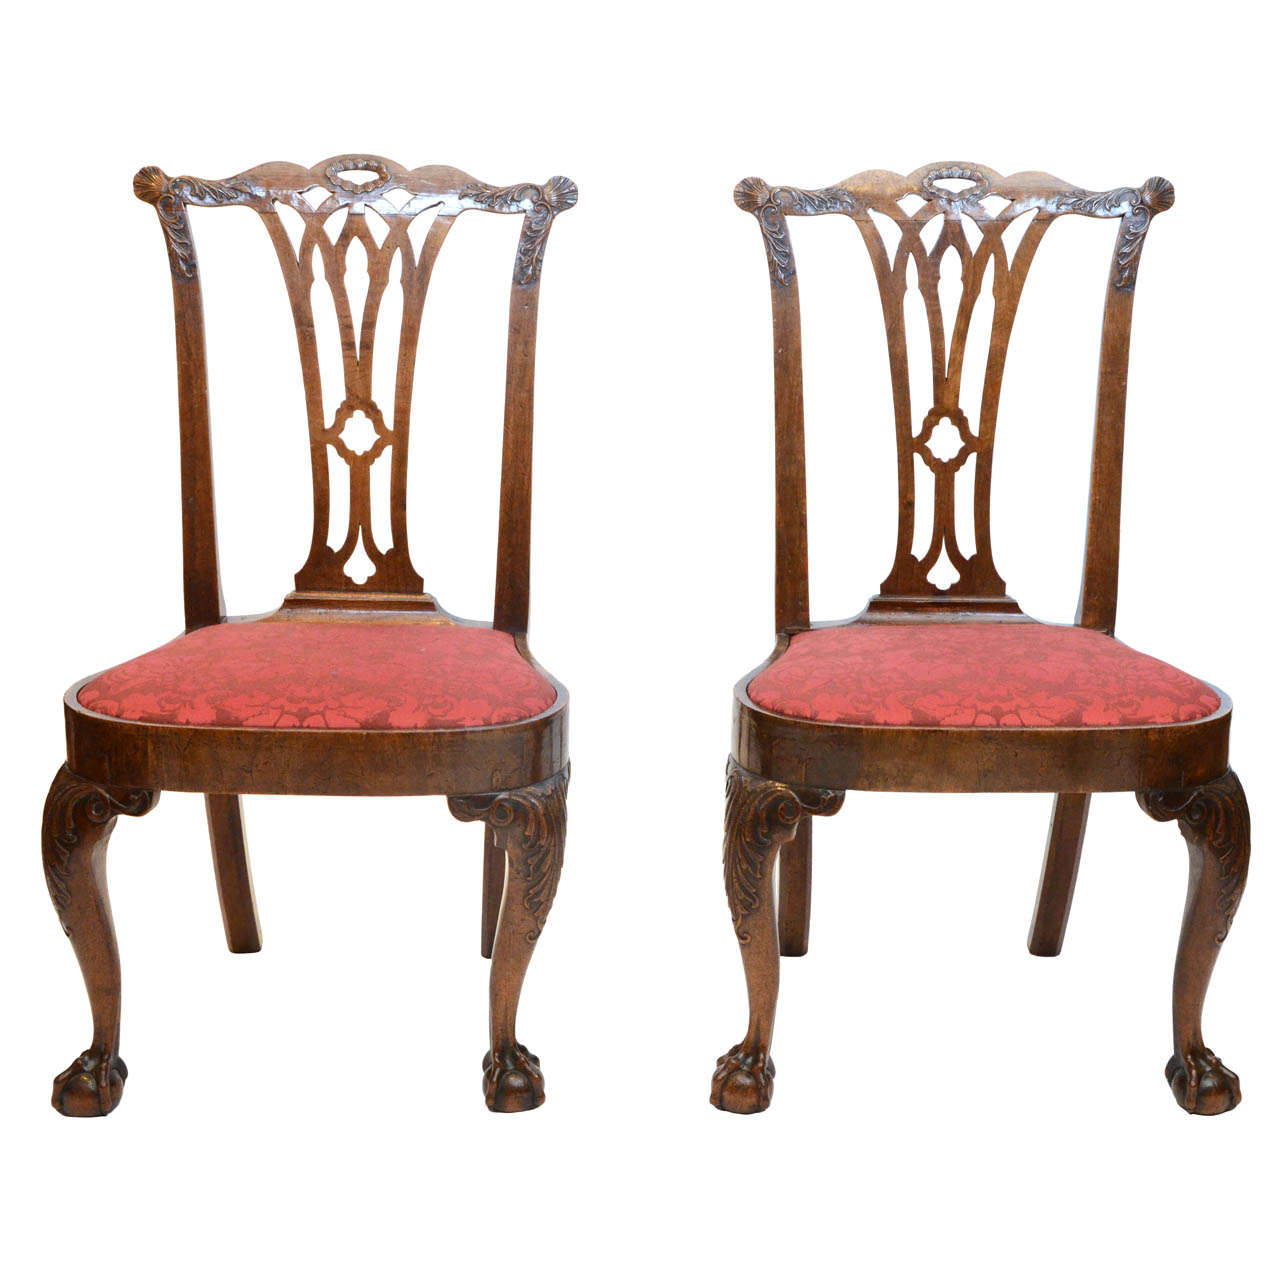 A fine pair of George II period walnut side chairs.